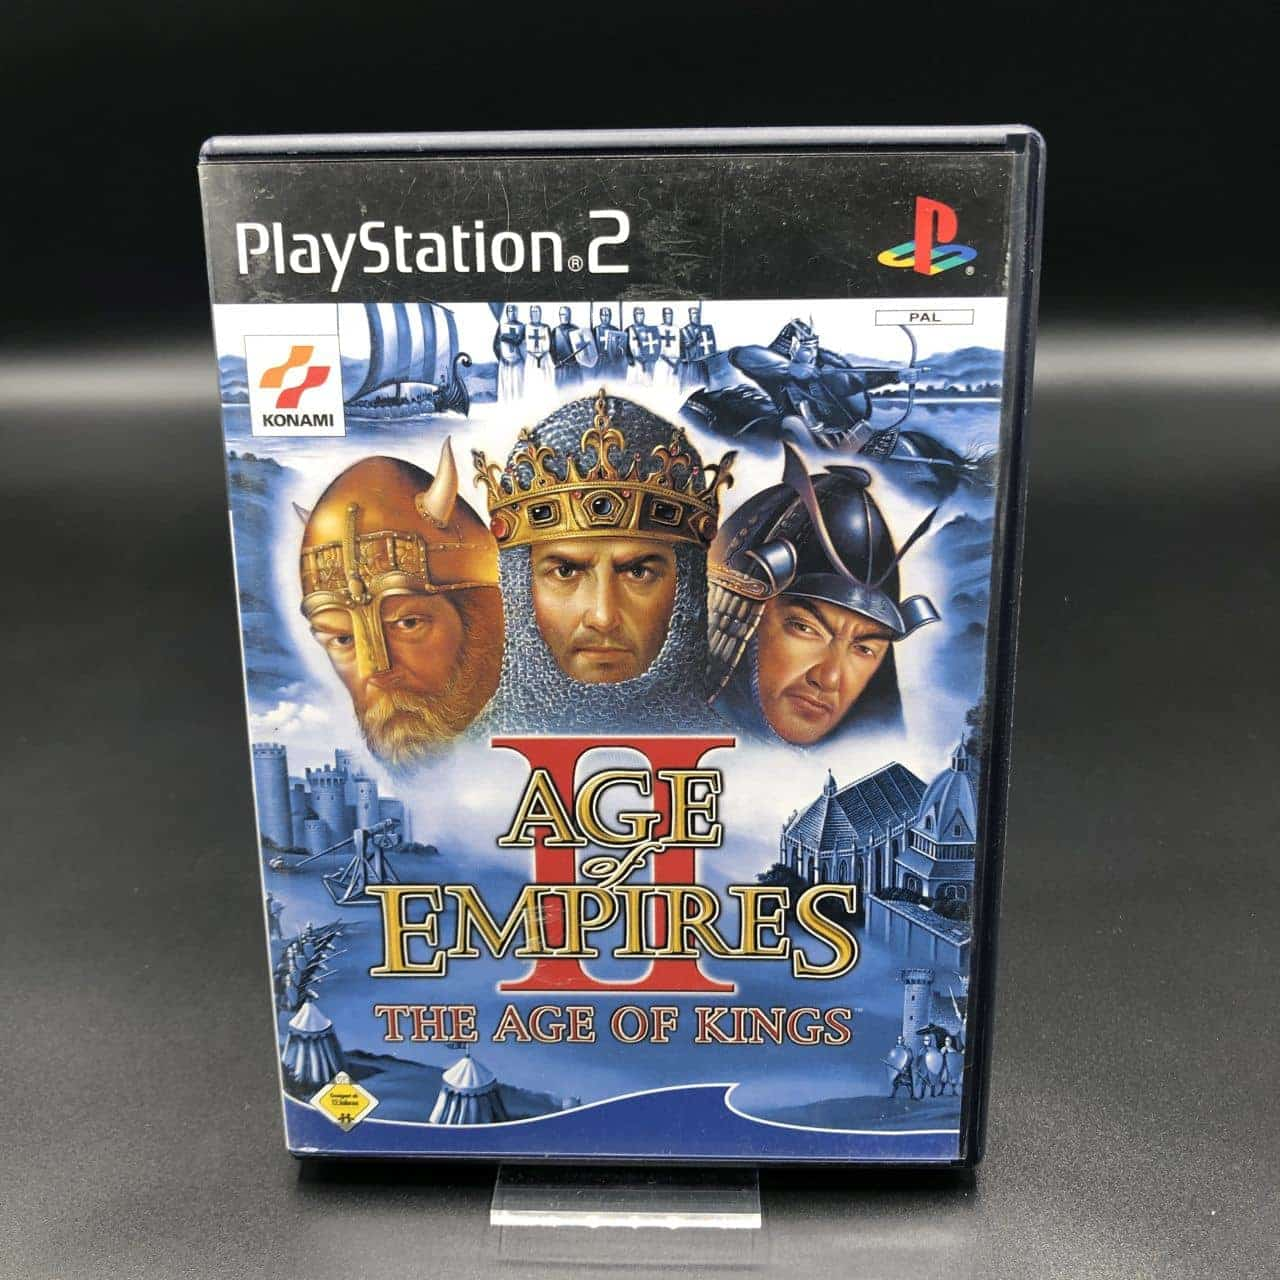 PS2 Age of Empires II: The Age of Kings (Komplett) (Gebrauchsspuren) SonyPlaystation 2